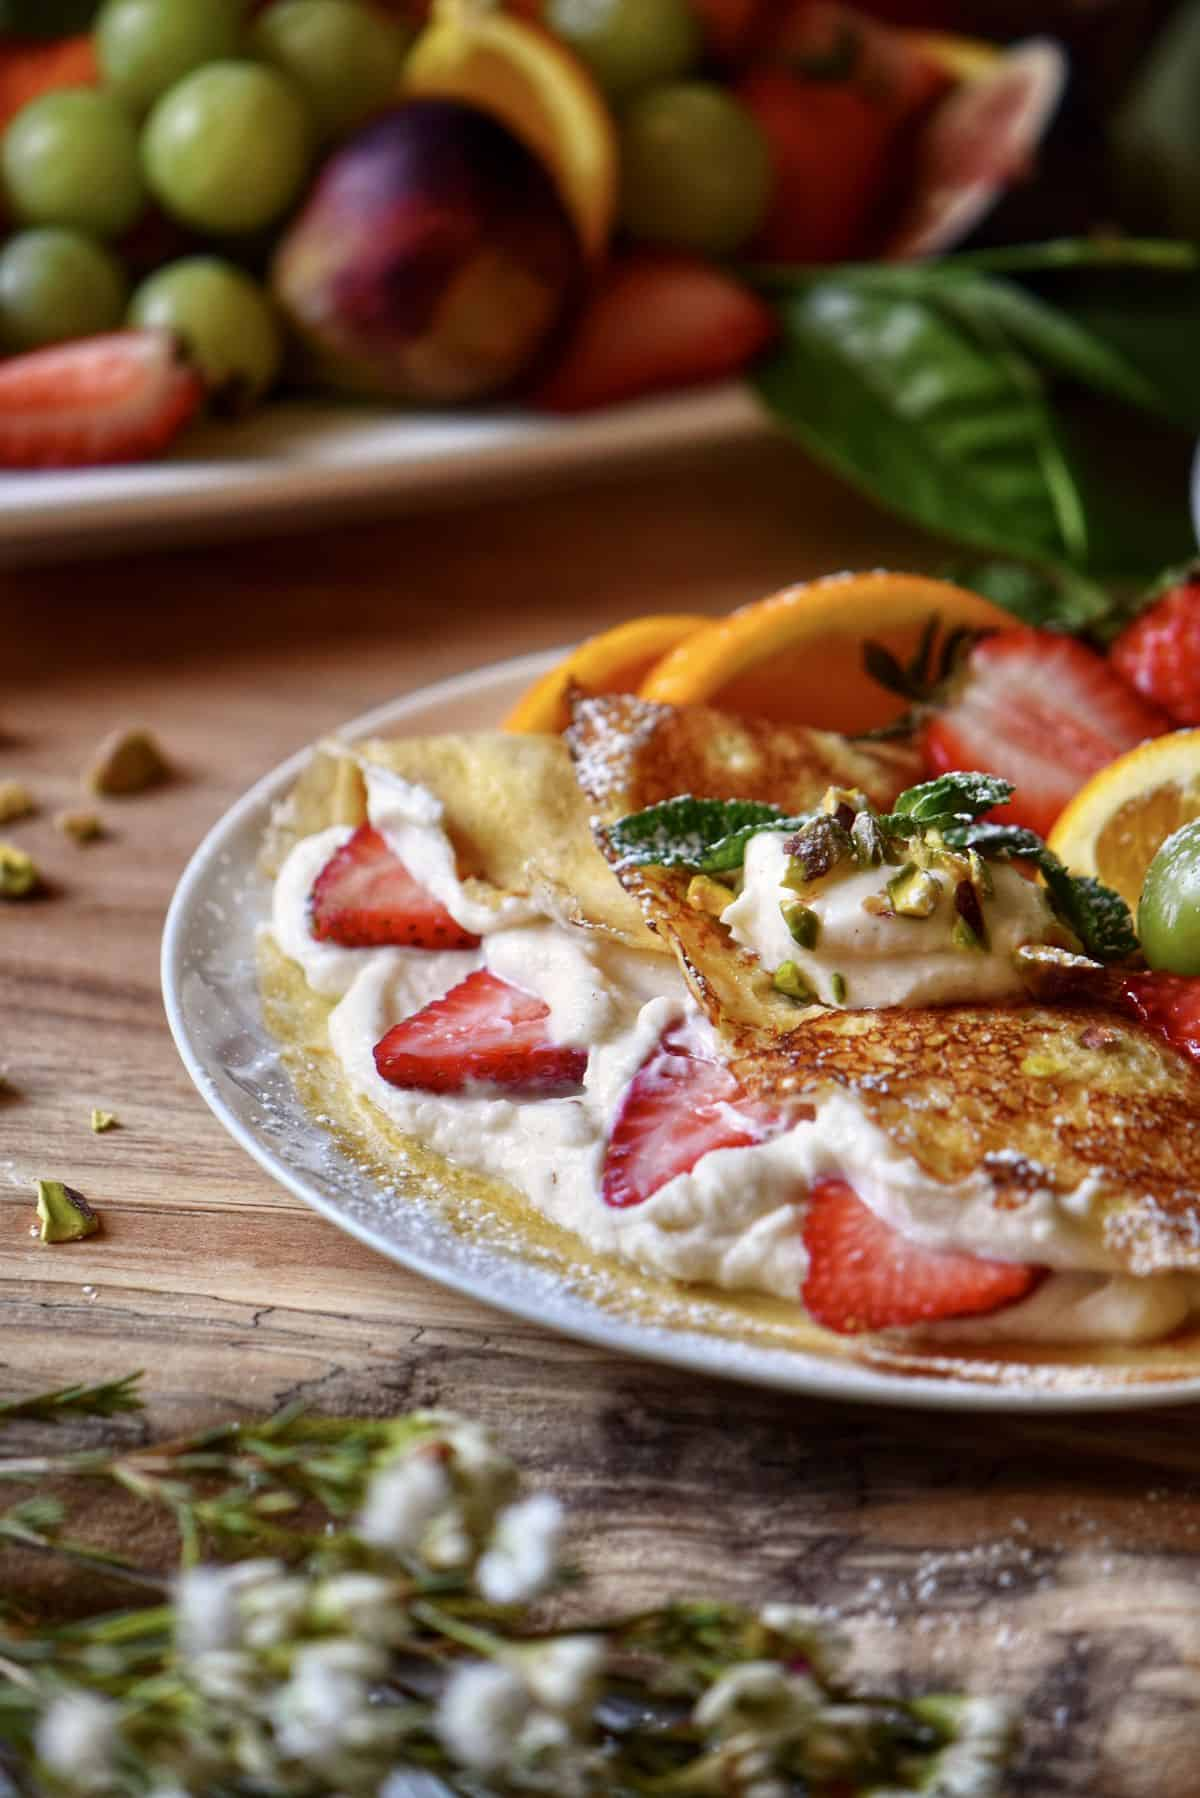 Ricotta filled crepes with strawberries.